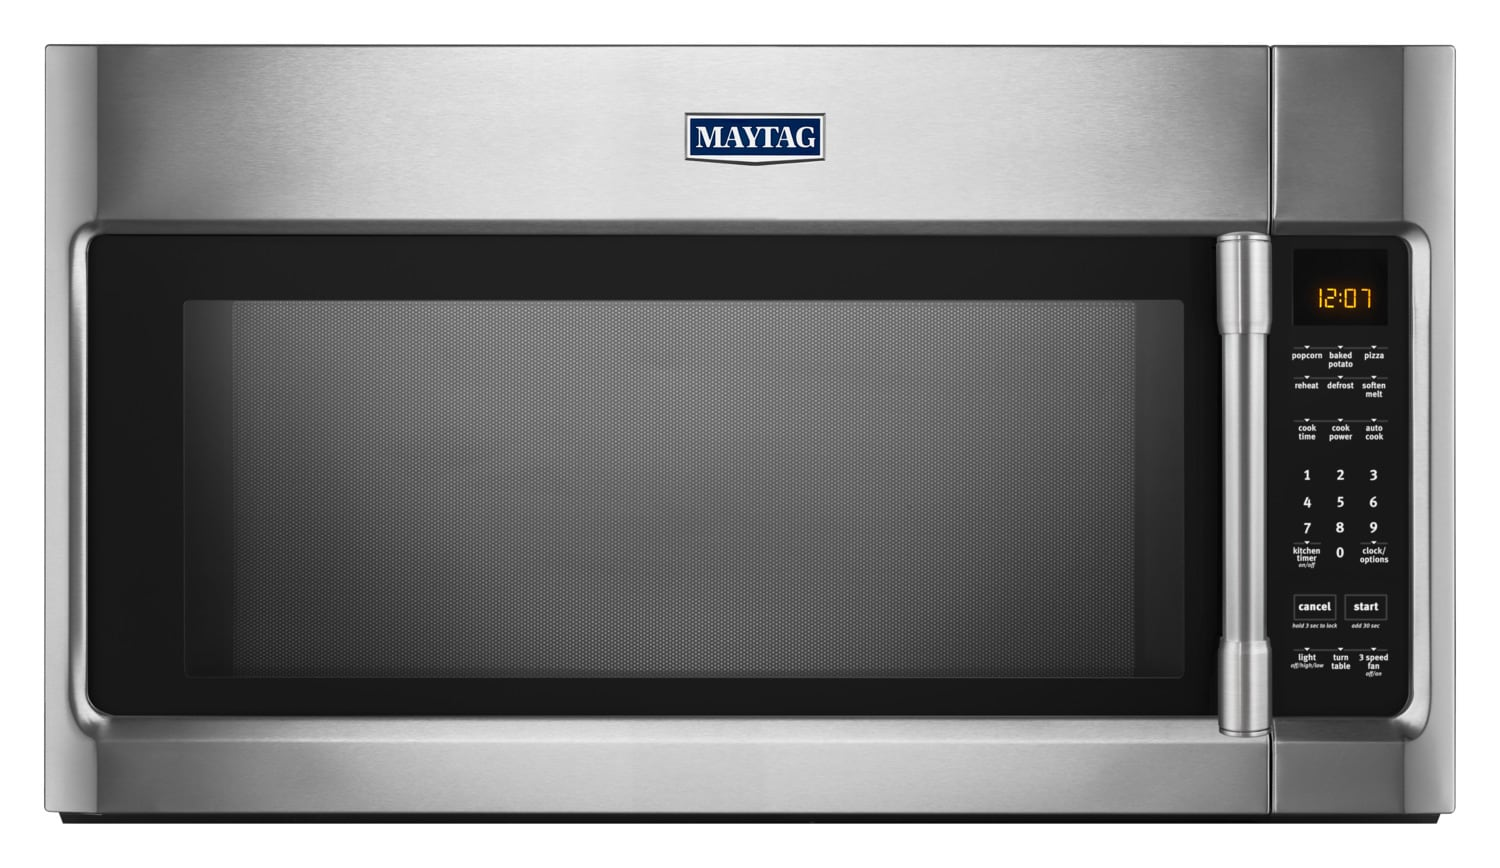 Maytag Stainless Steel Over-the-Range Microwave (2.0 Cu. Ft.) - YMMV4205FZ